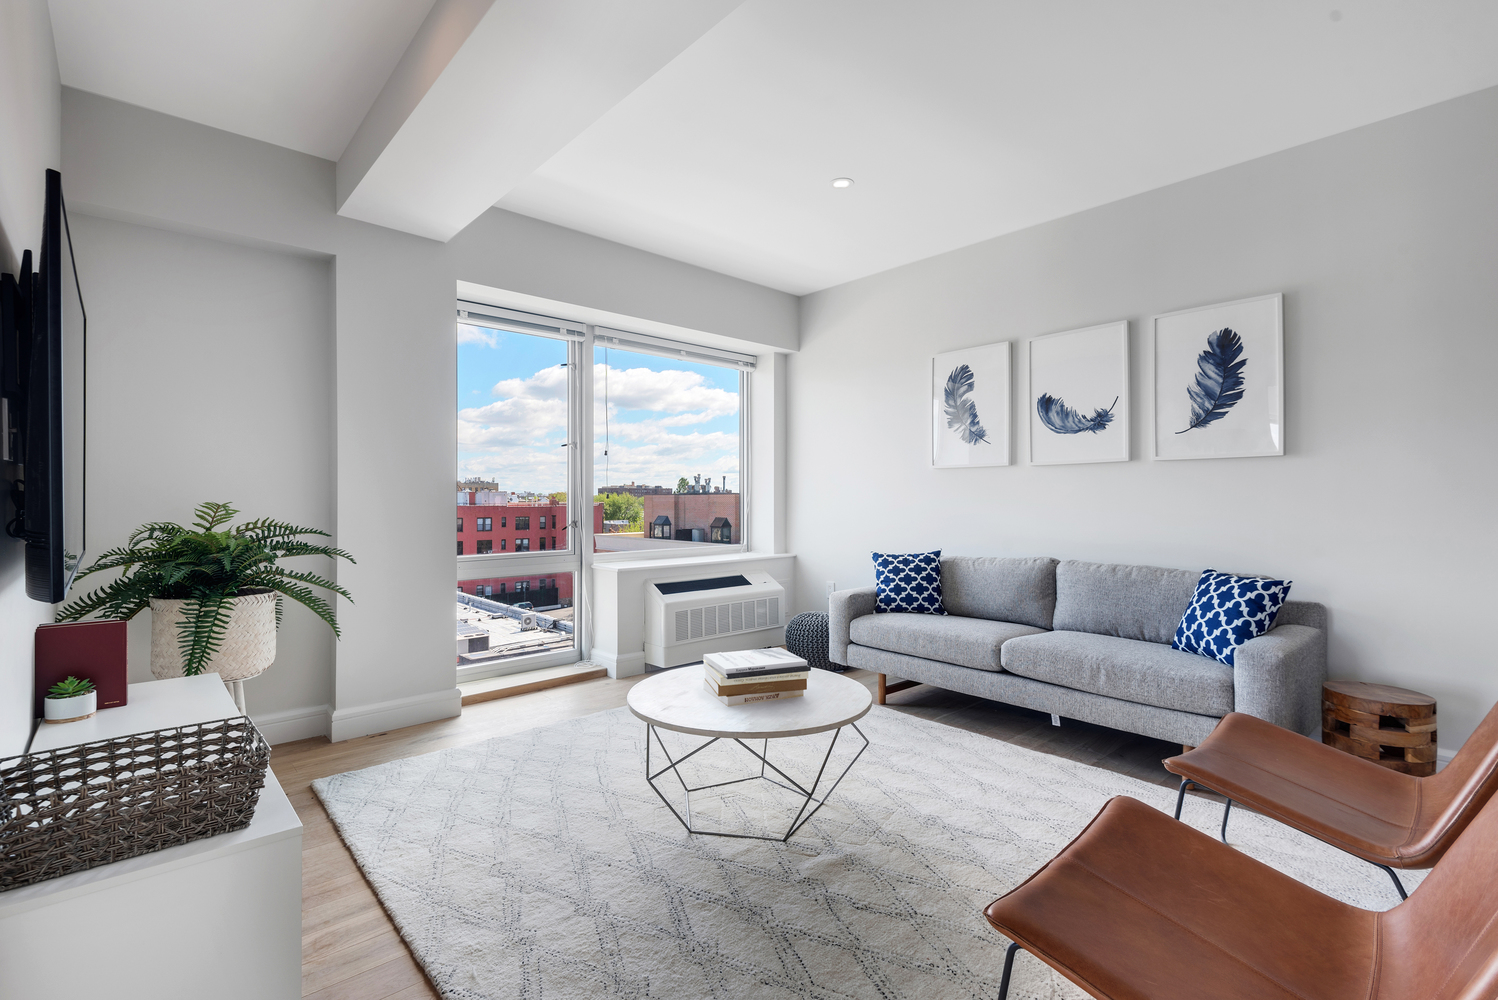 MDS_34-01_Steinway_Street_Long_Island_City_Virtual_Staging_v2_-_Accessories_only_13_20190606-151943.jpg